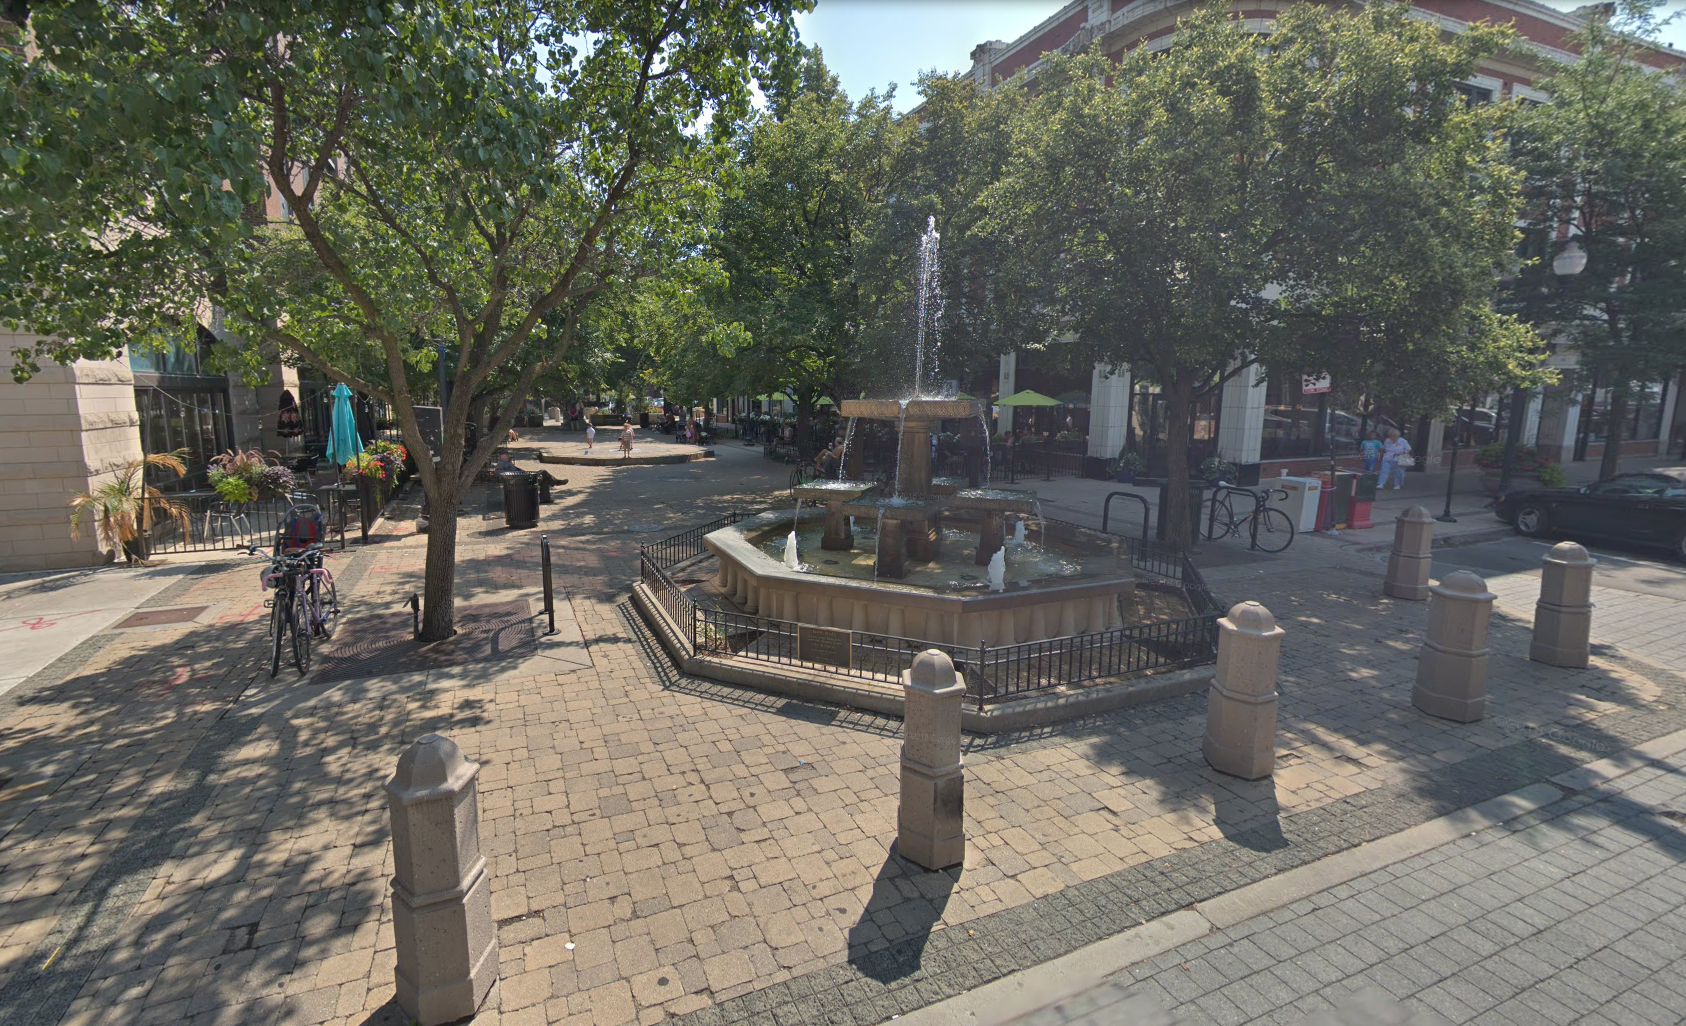 Pictured: Giddings Plaza in Lincoln Square